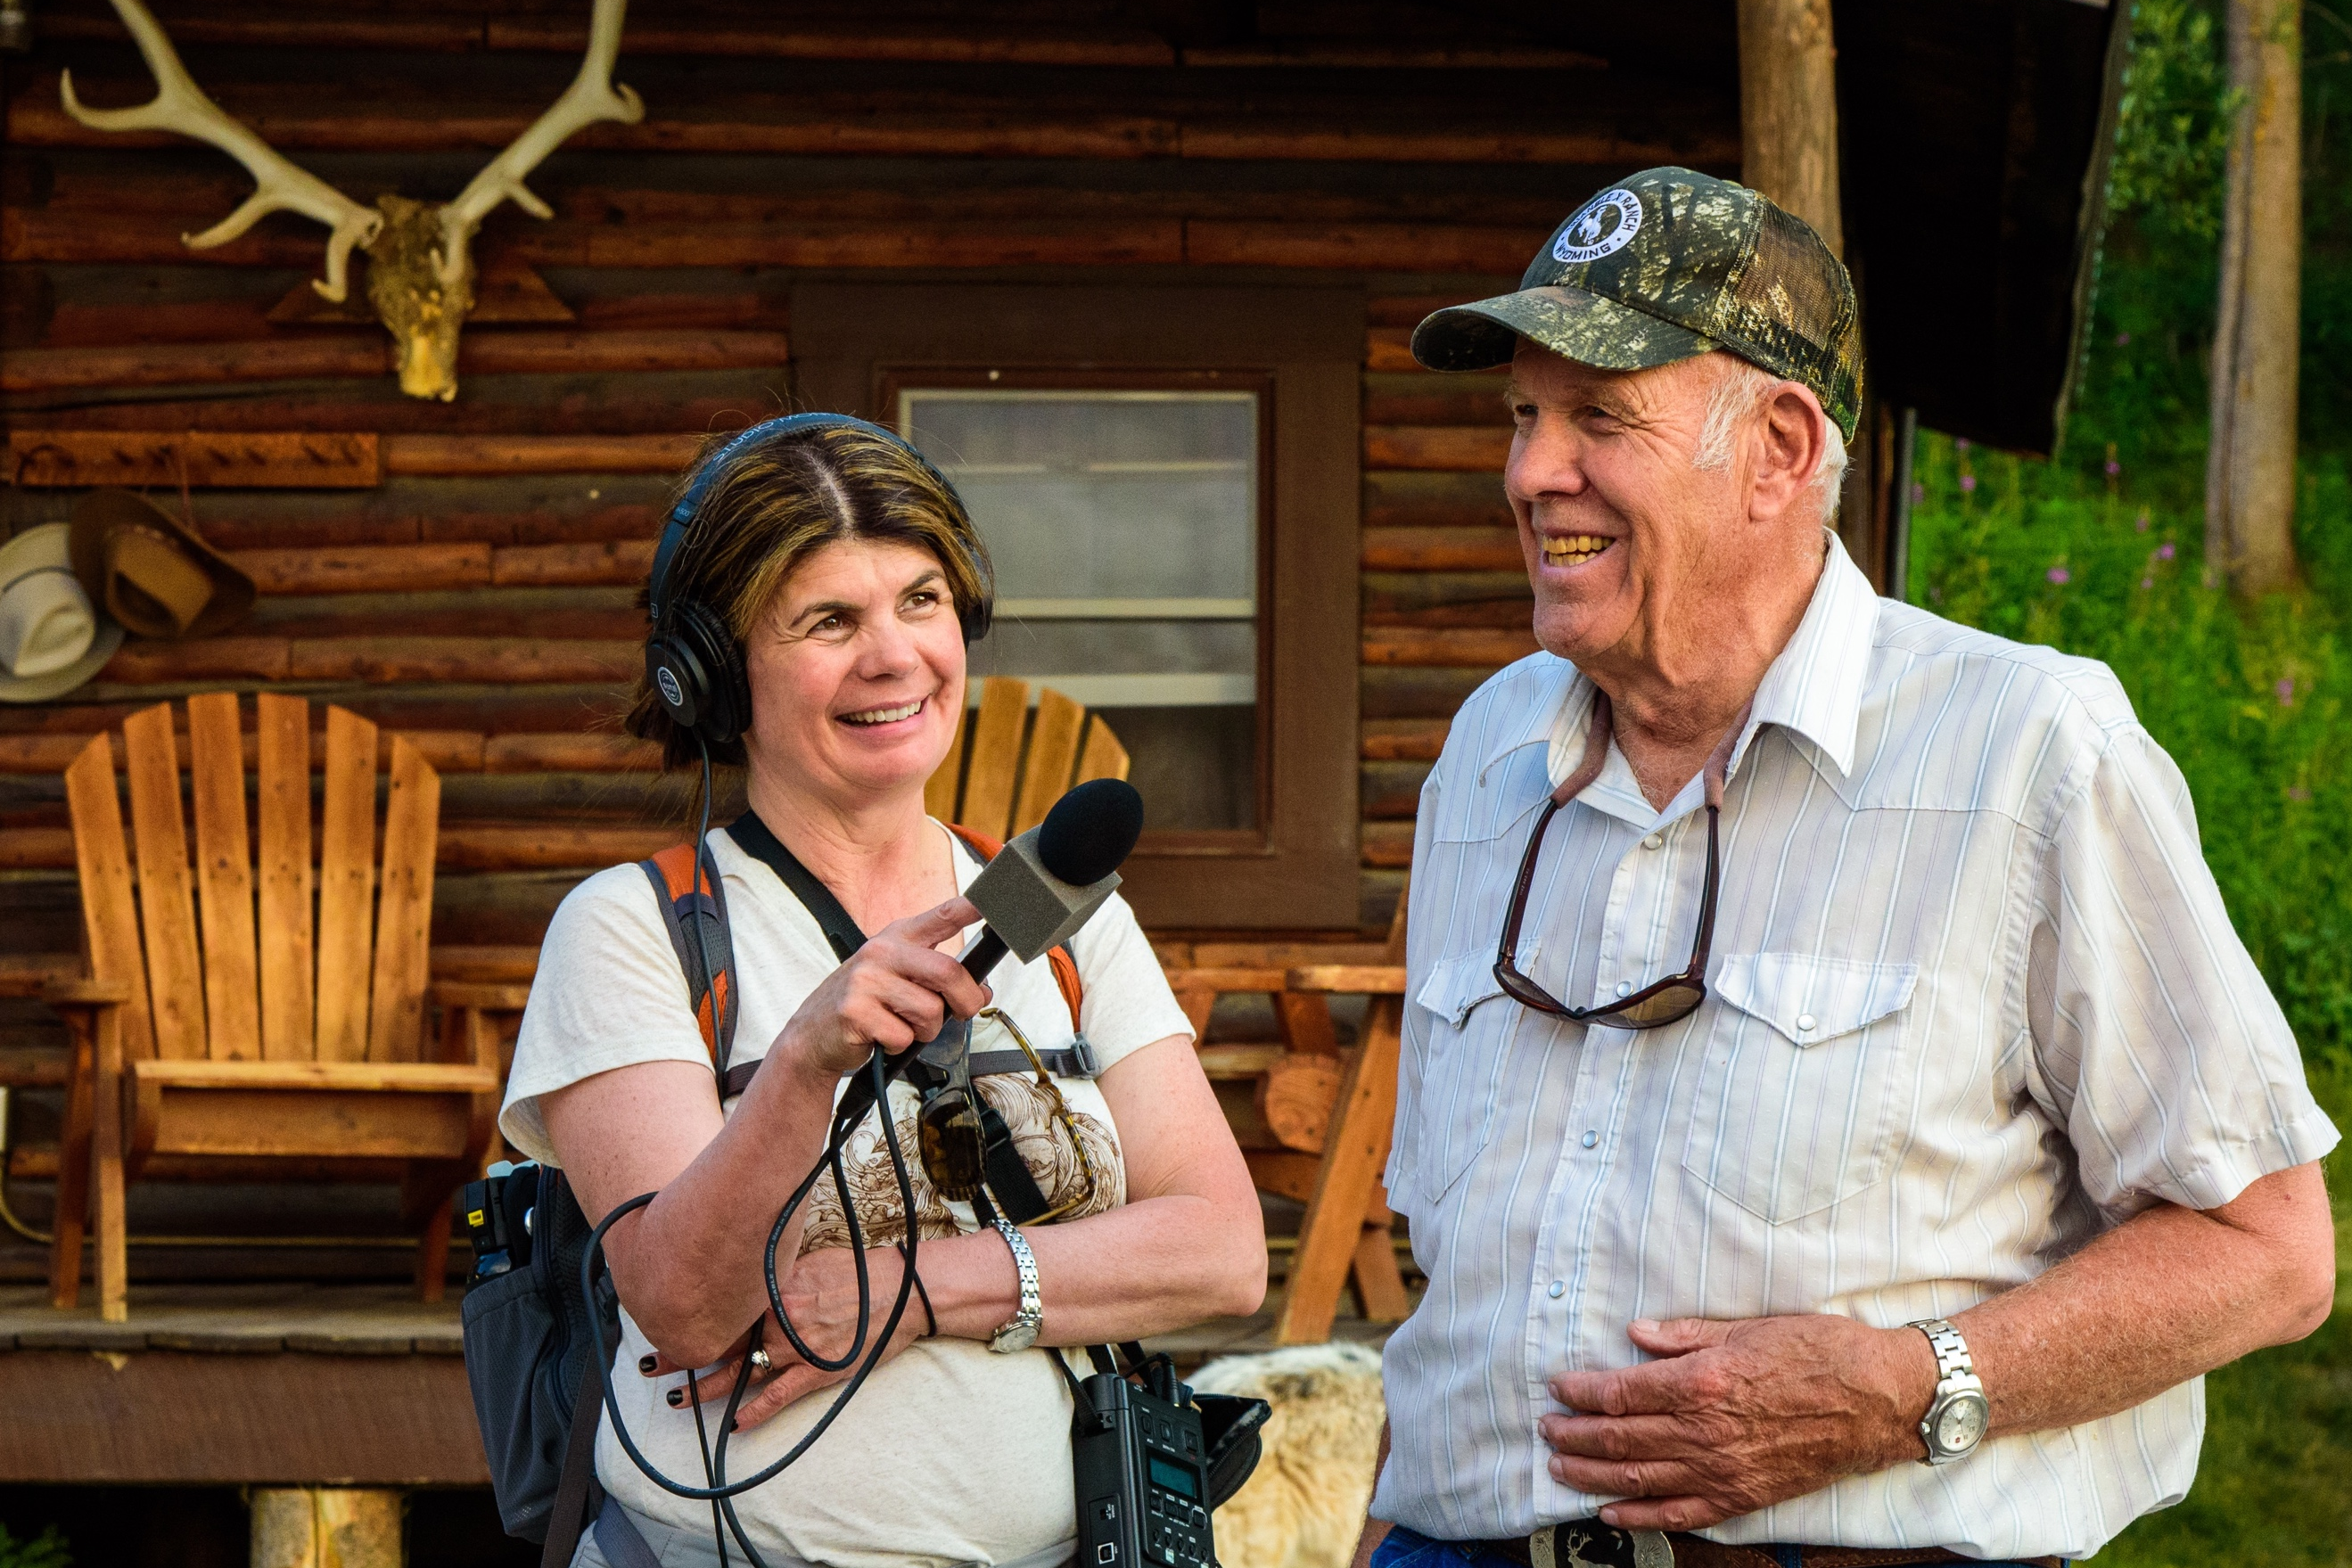 A woman holding a microphone up to a man in front of a log cabin